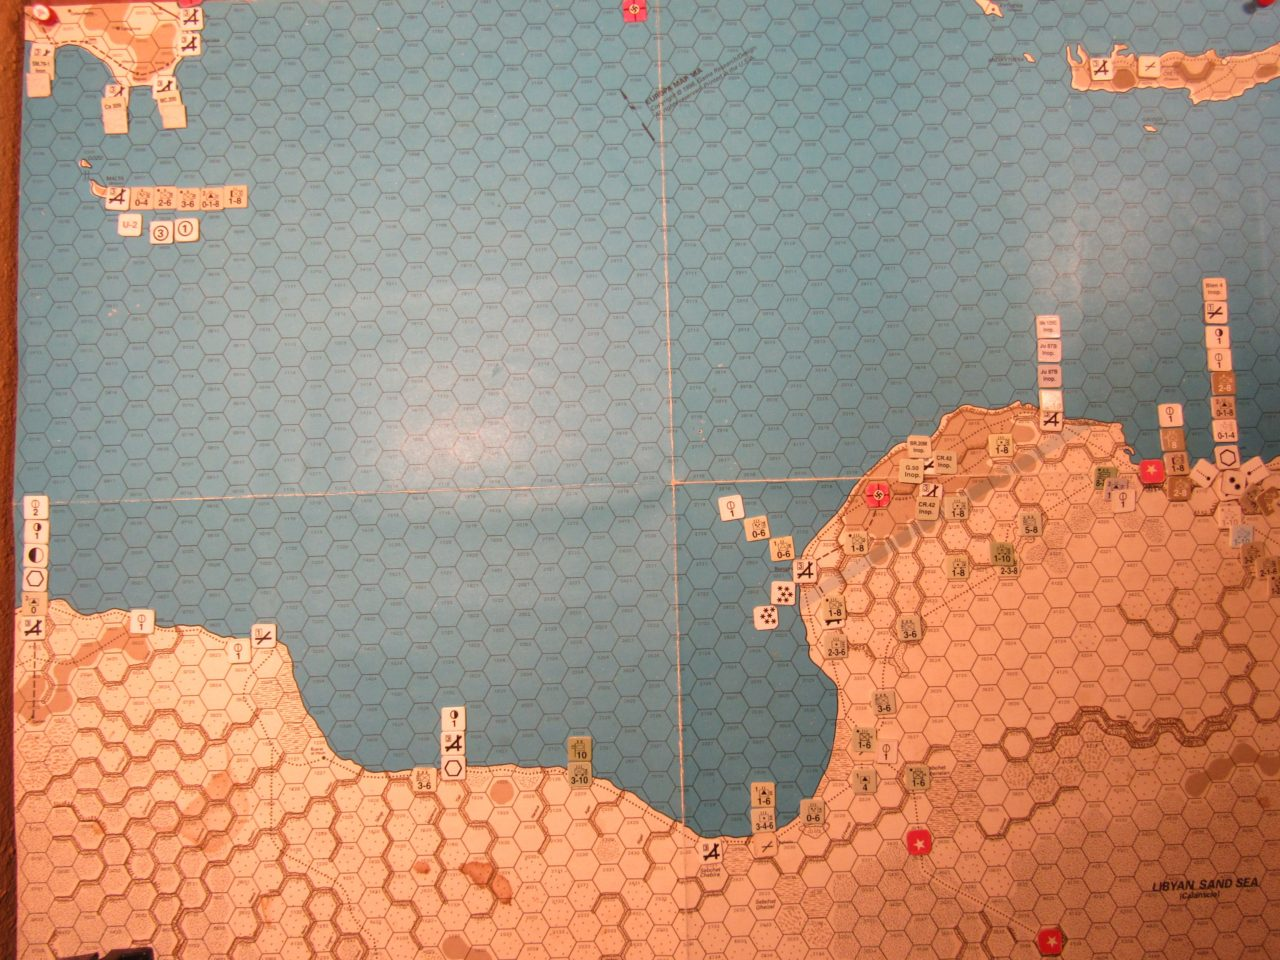 WW ME/ER-II/Crete Scenario Apr I 41 Axis EOT dispositions: Libya and Sicily